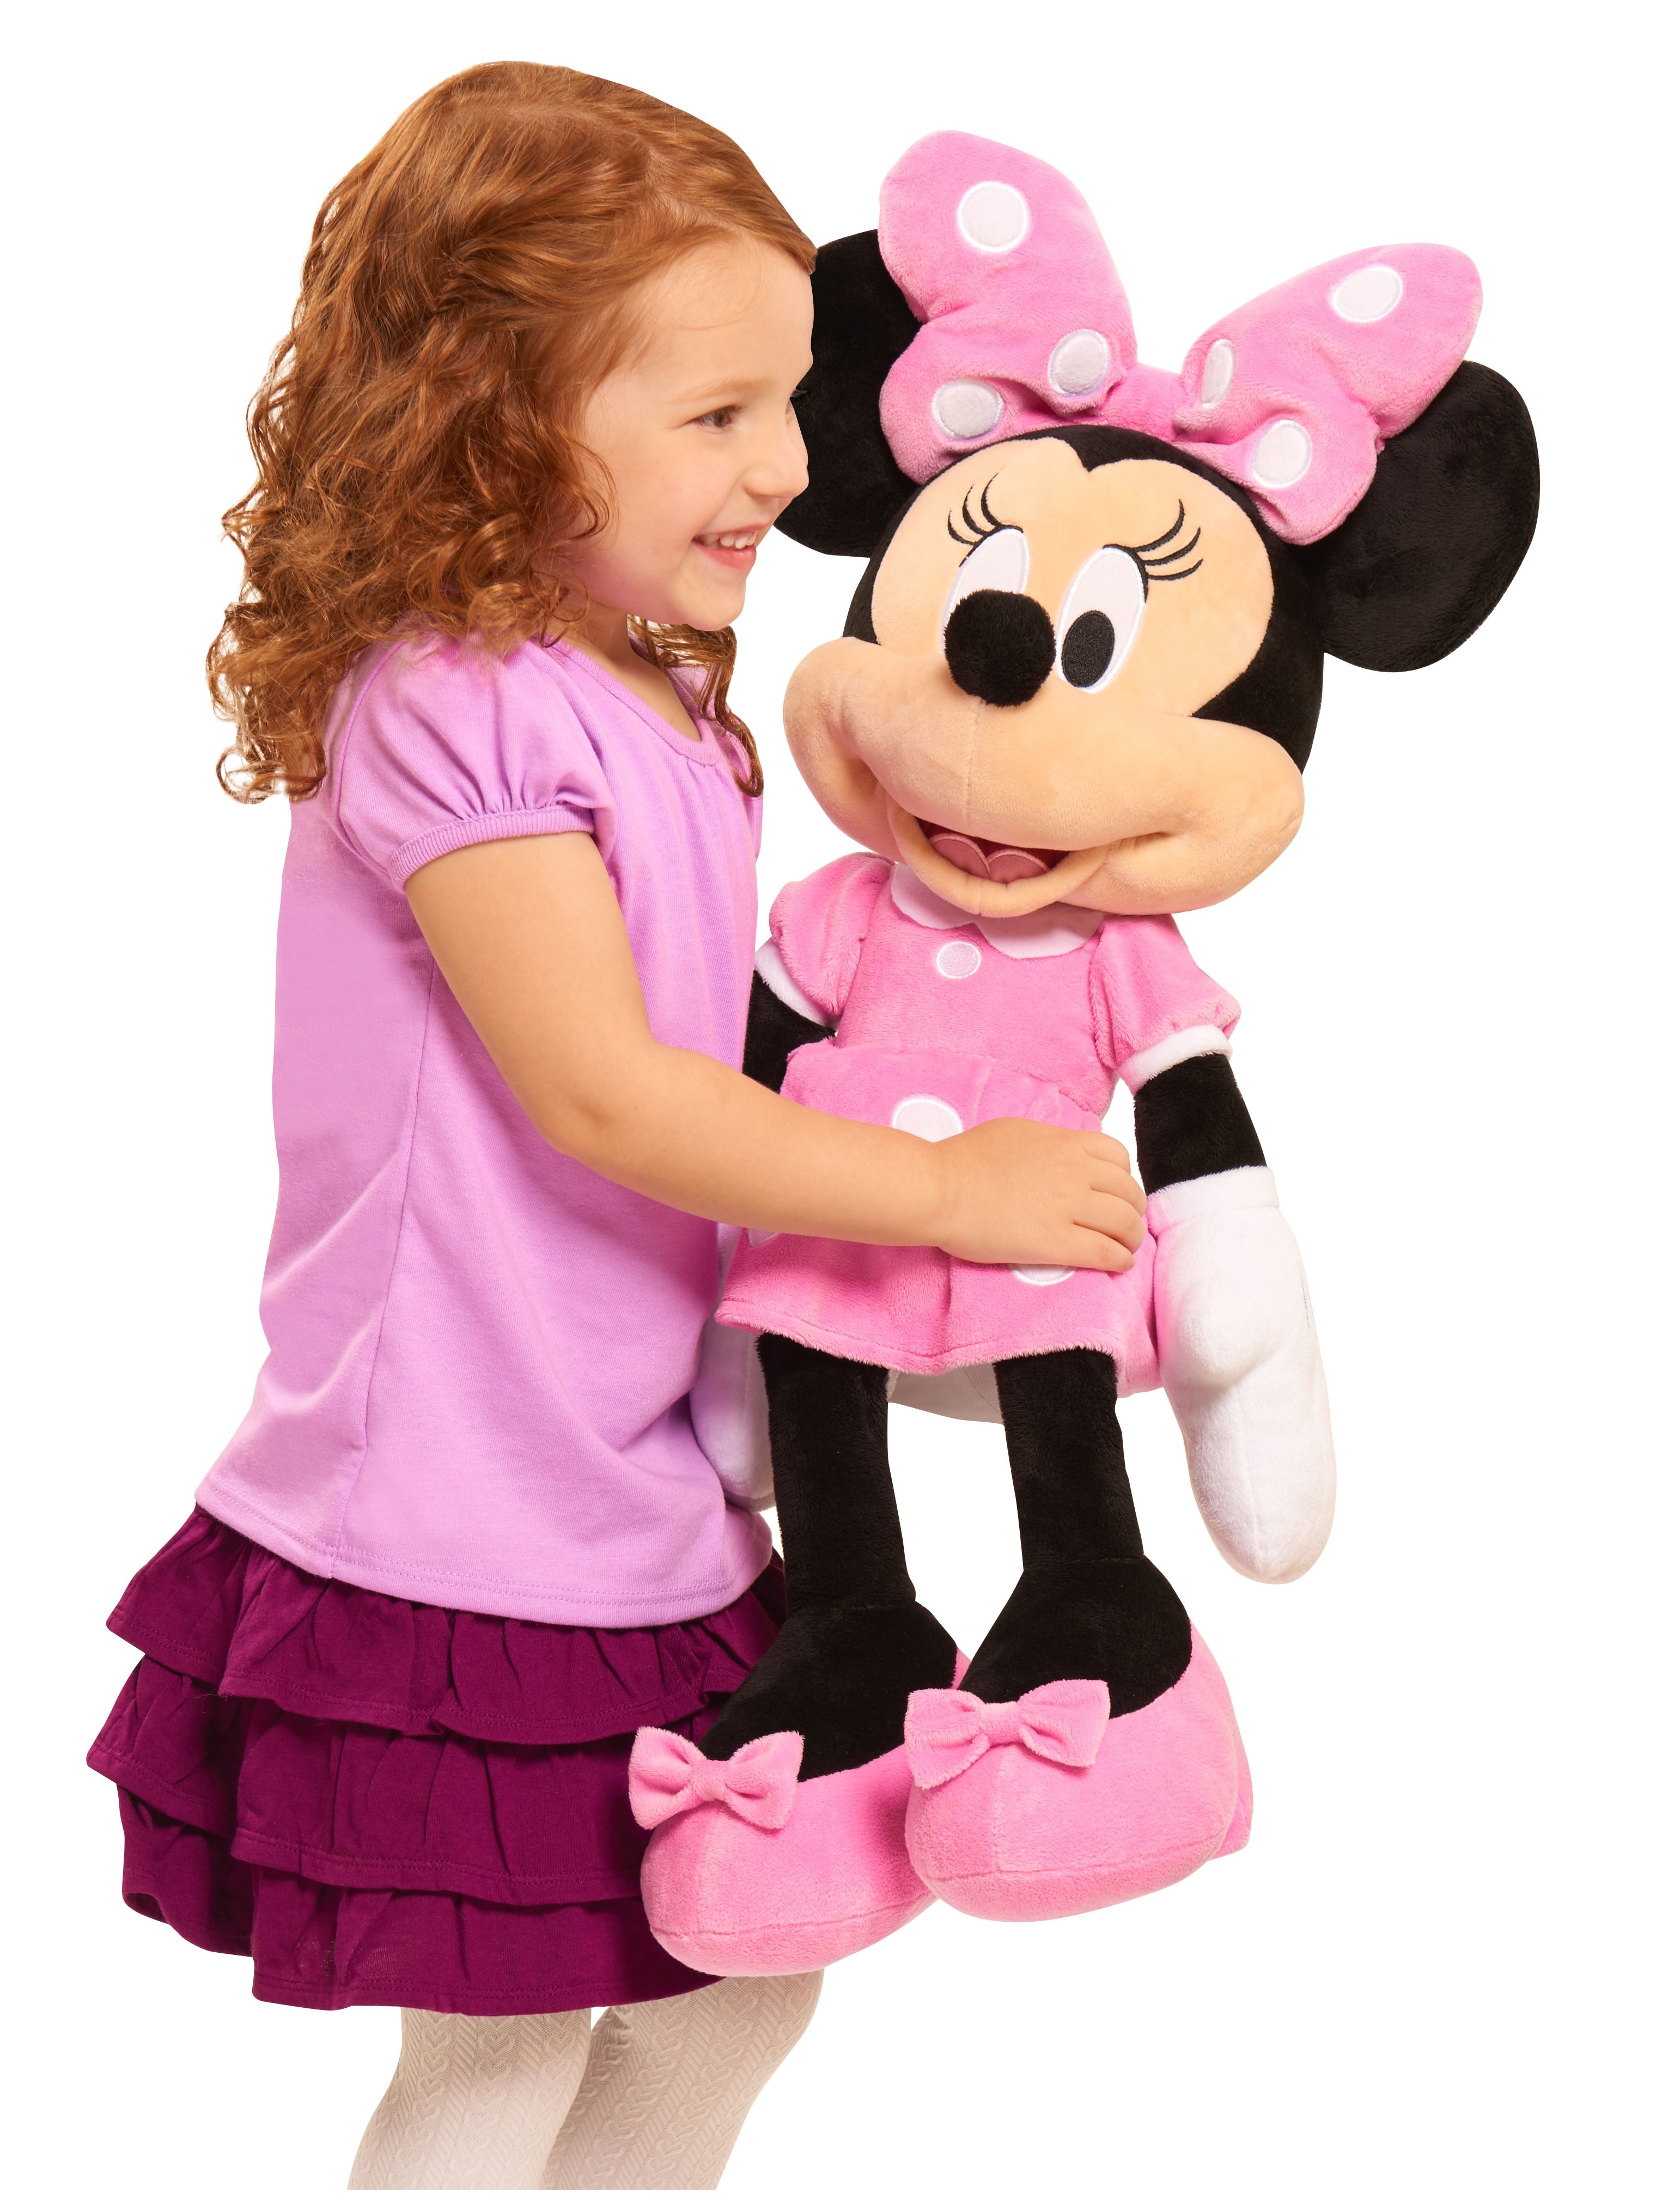 The Disney Minnie Mouse Large Plush is a lovely addition